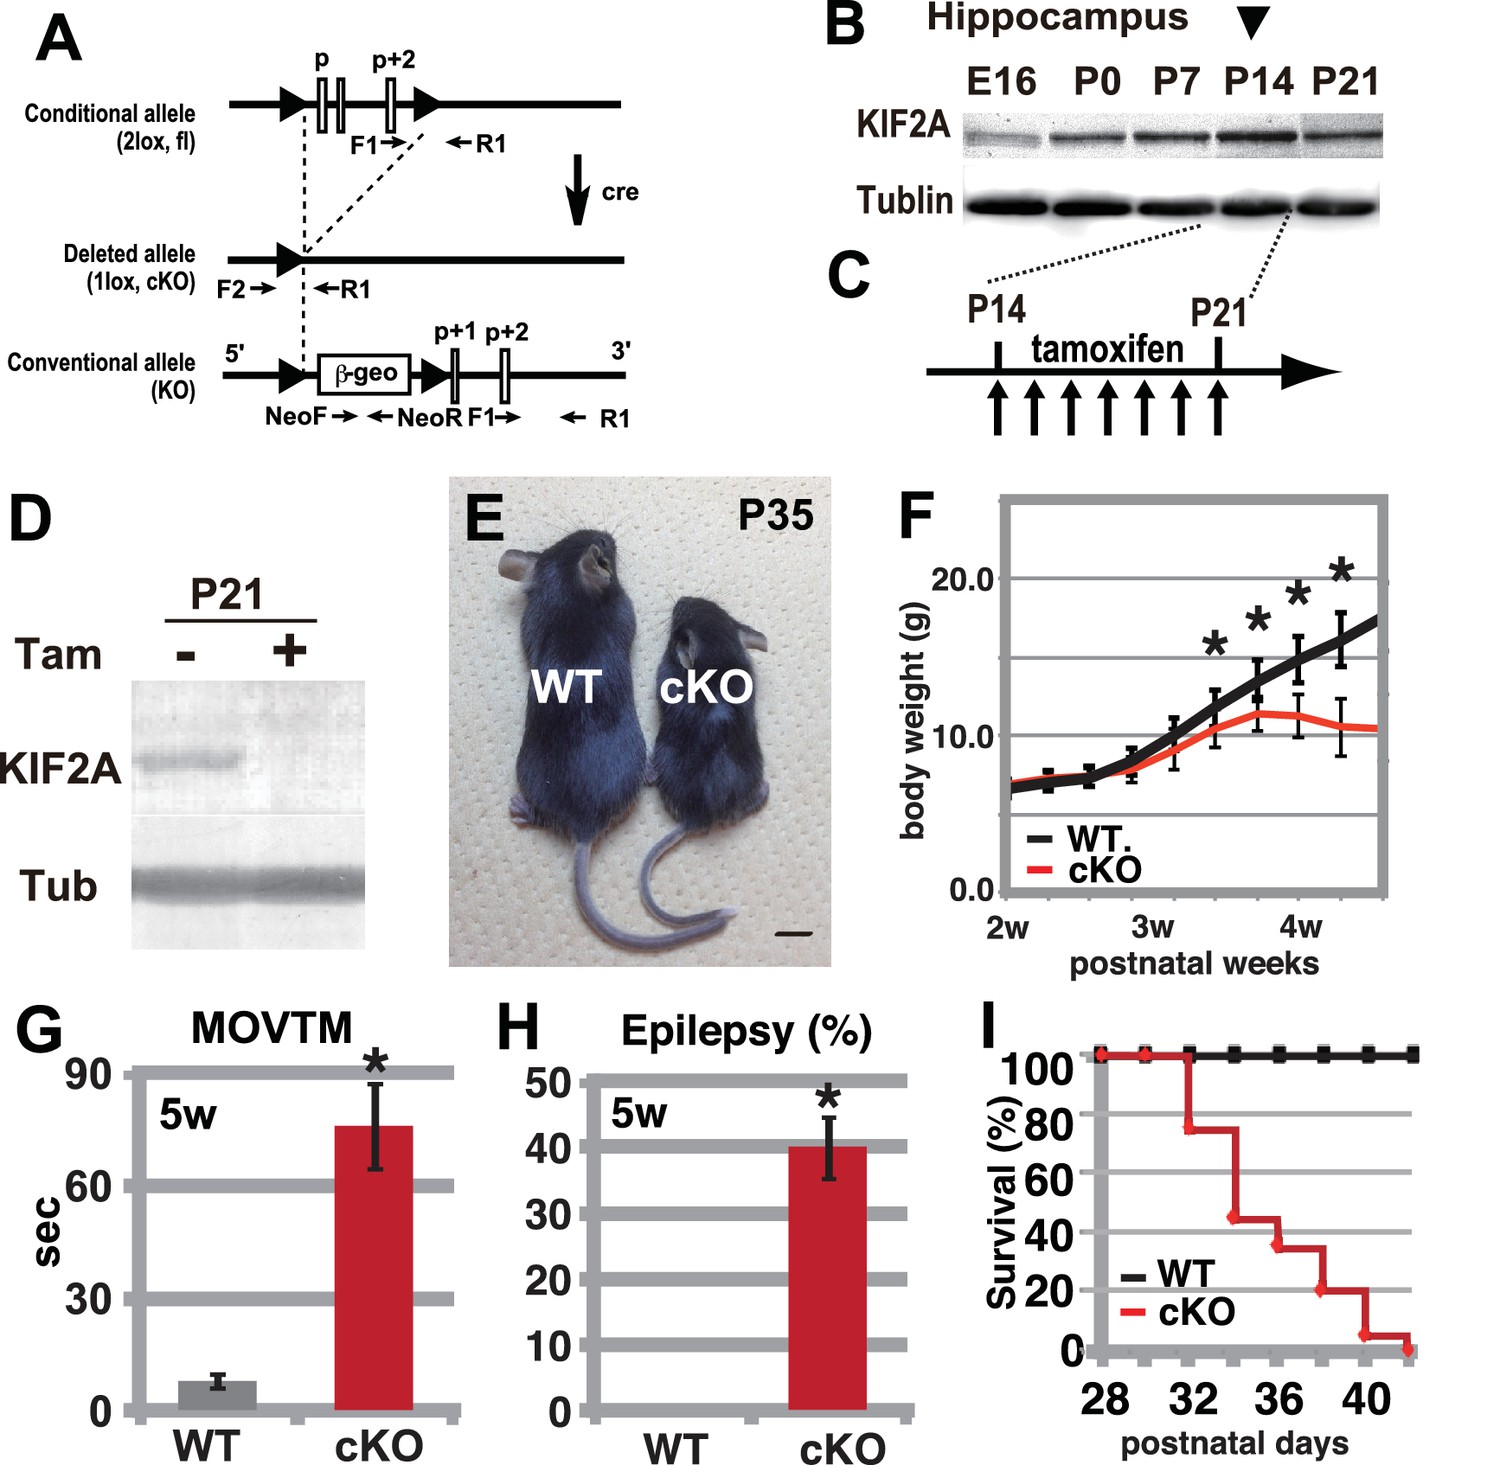 hight resolution of hyperactivity severe epilepsy and eventual fatality in 3w kif2a cko mice